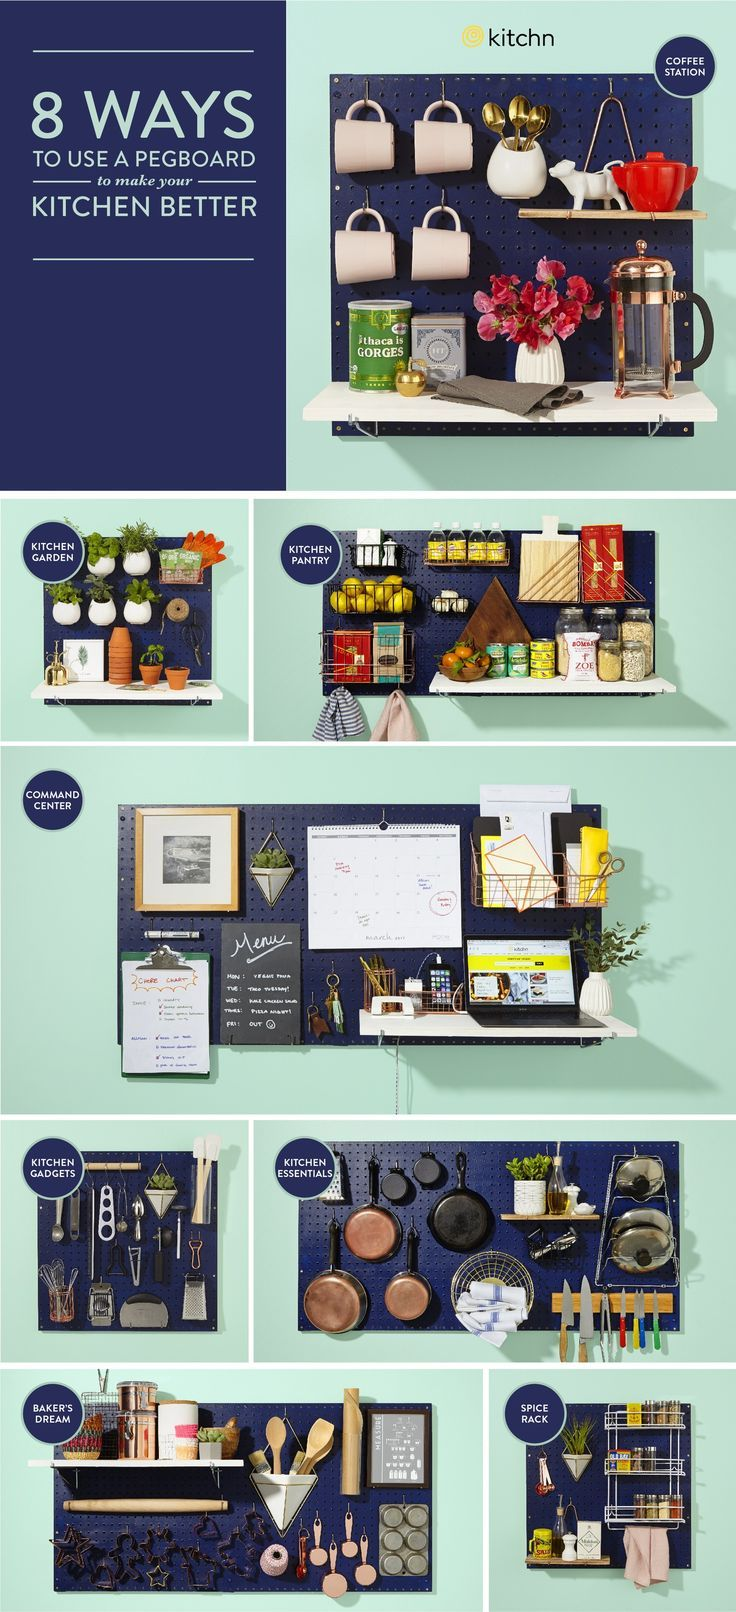 8 Ways to Use a Pegboard to Make Your Kitchen Better #deptodublin